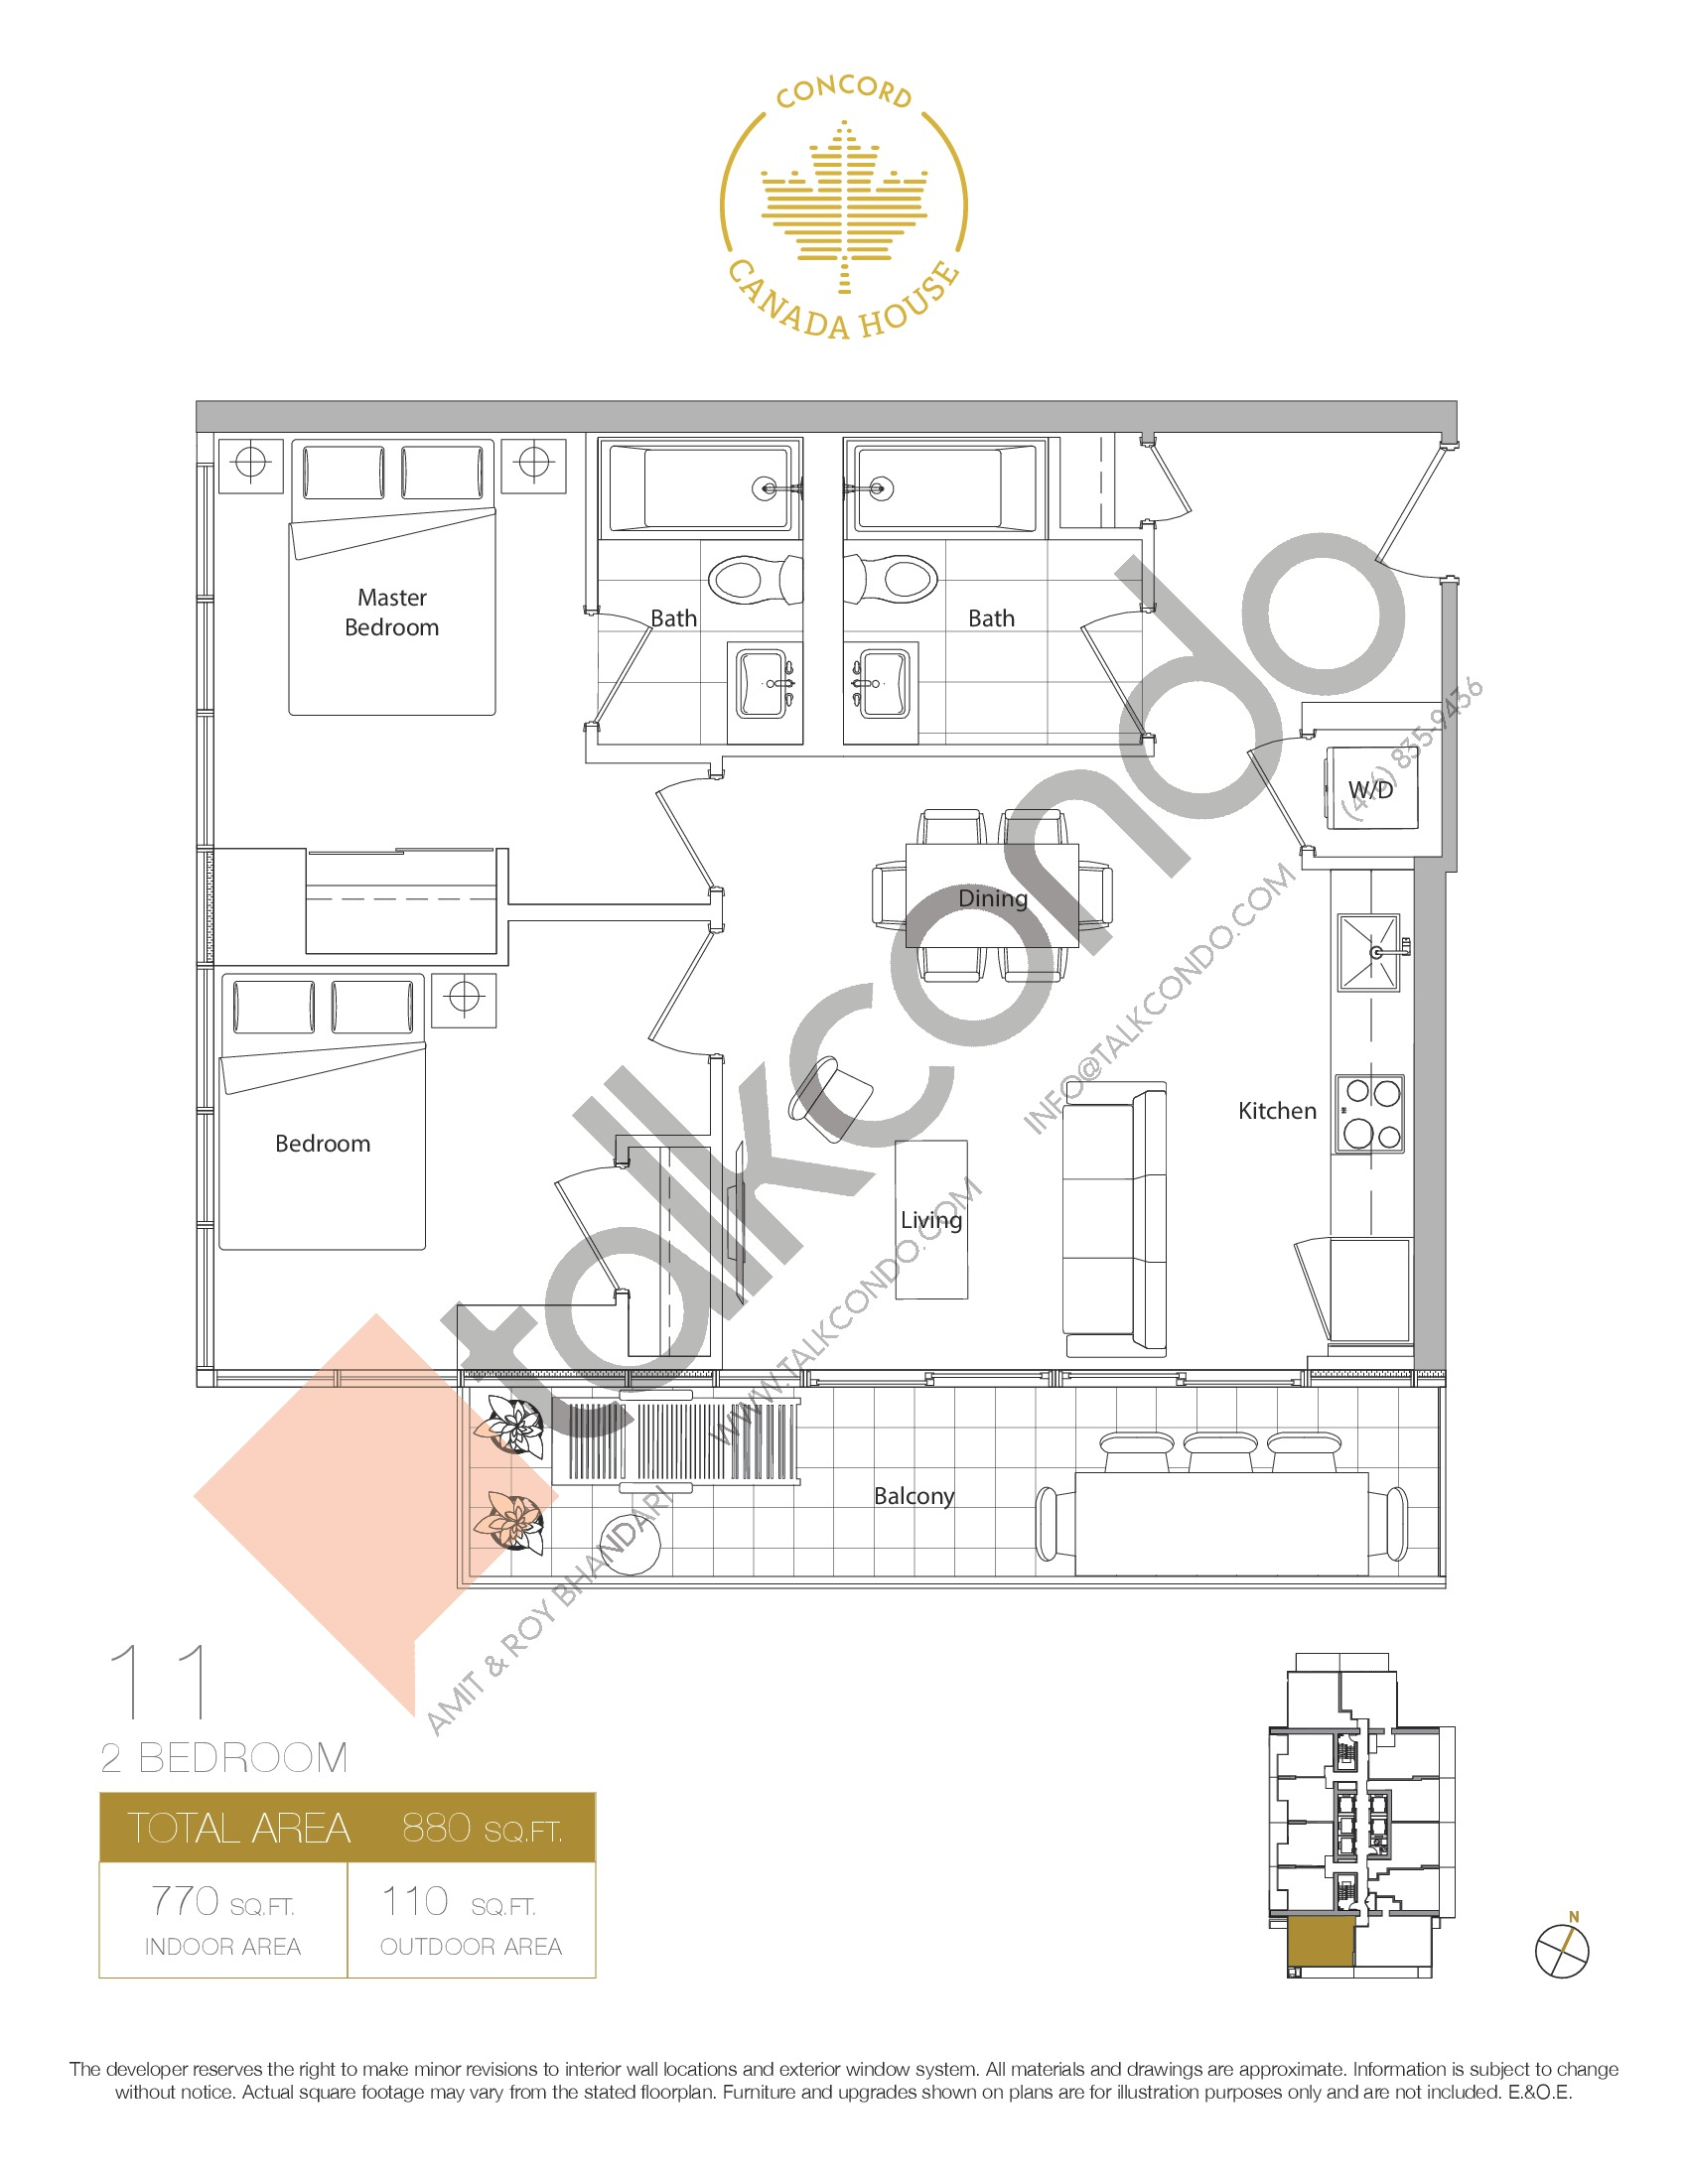 11 - West Tower Floor Plan at Concord Canada House Condos - 770 sq.ft